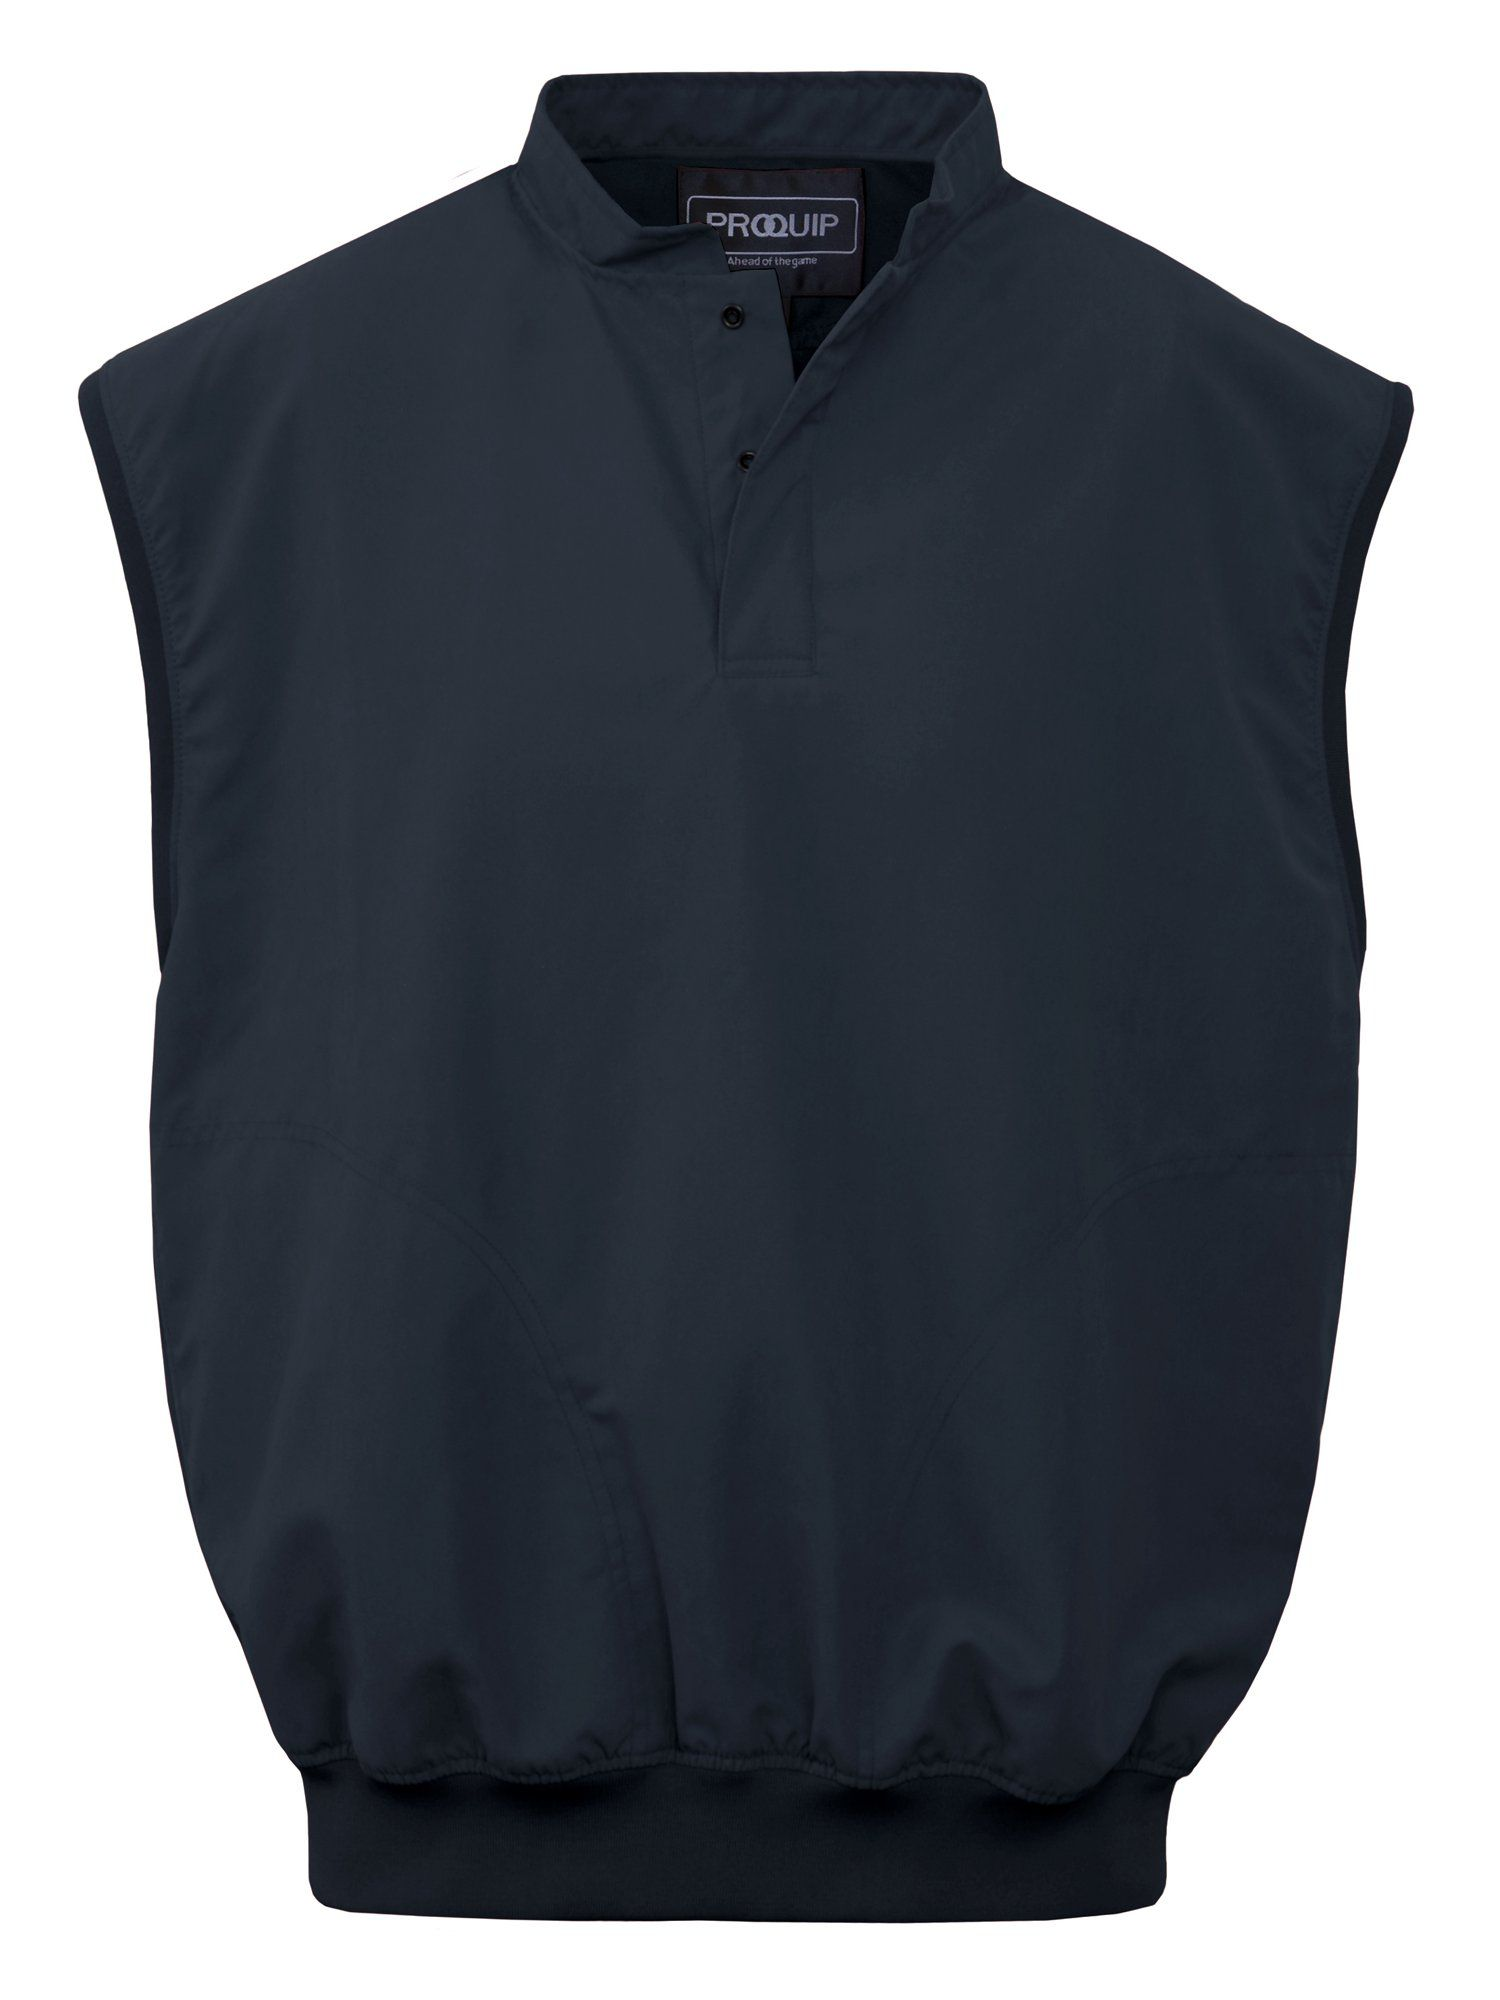 Aquasoft sleeveless vest